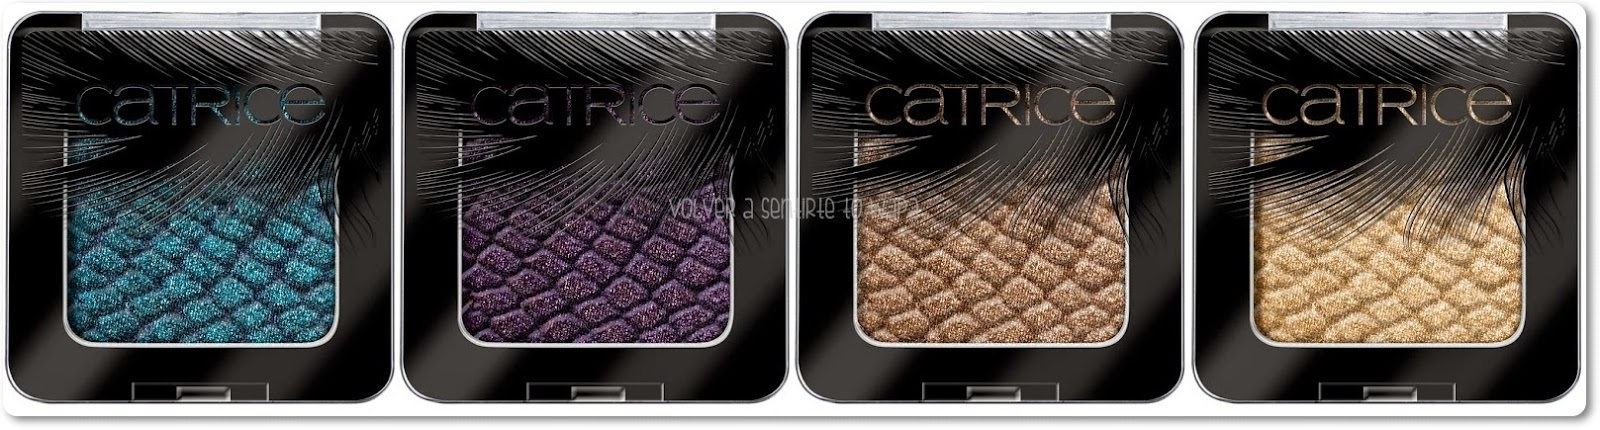 CATRICE - Feathered Fall - Luxury Eyeshadows - Volver a Sentirte to Wapa